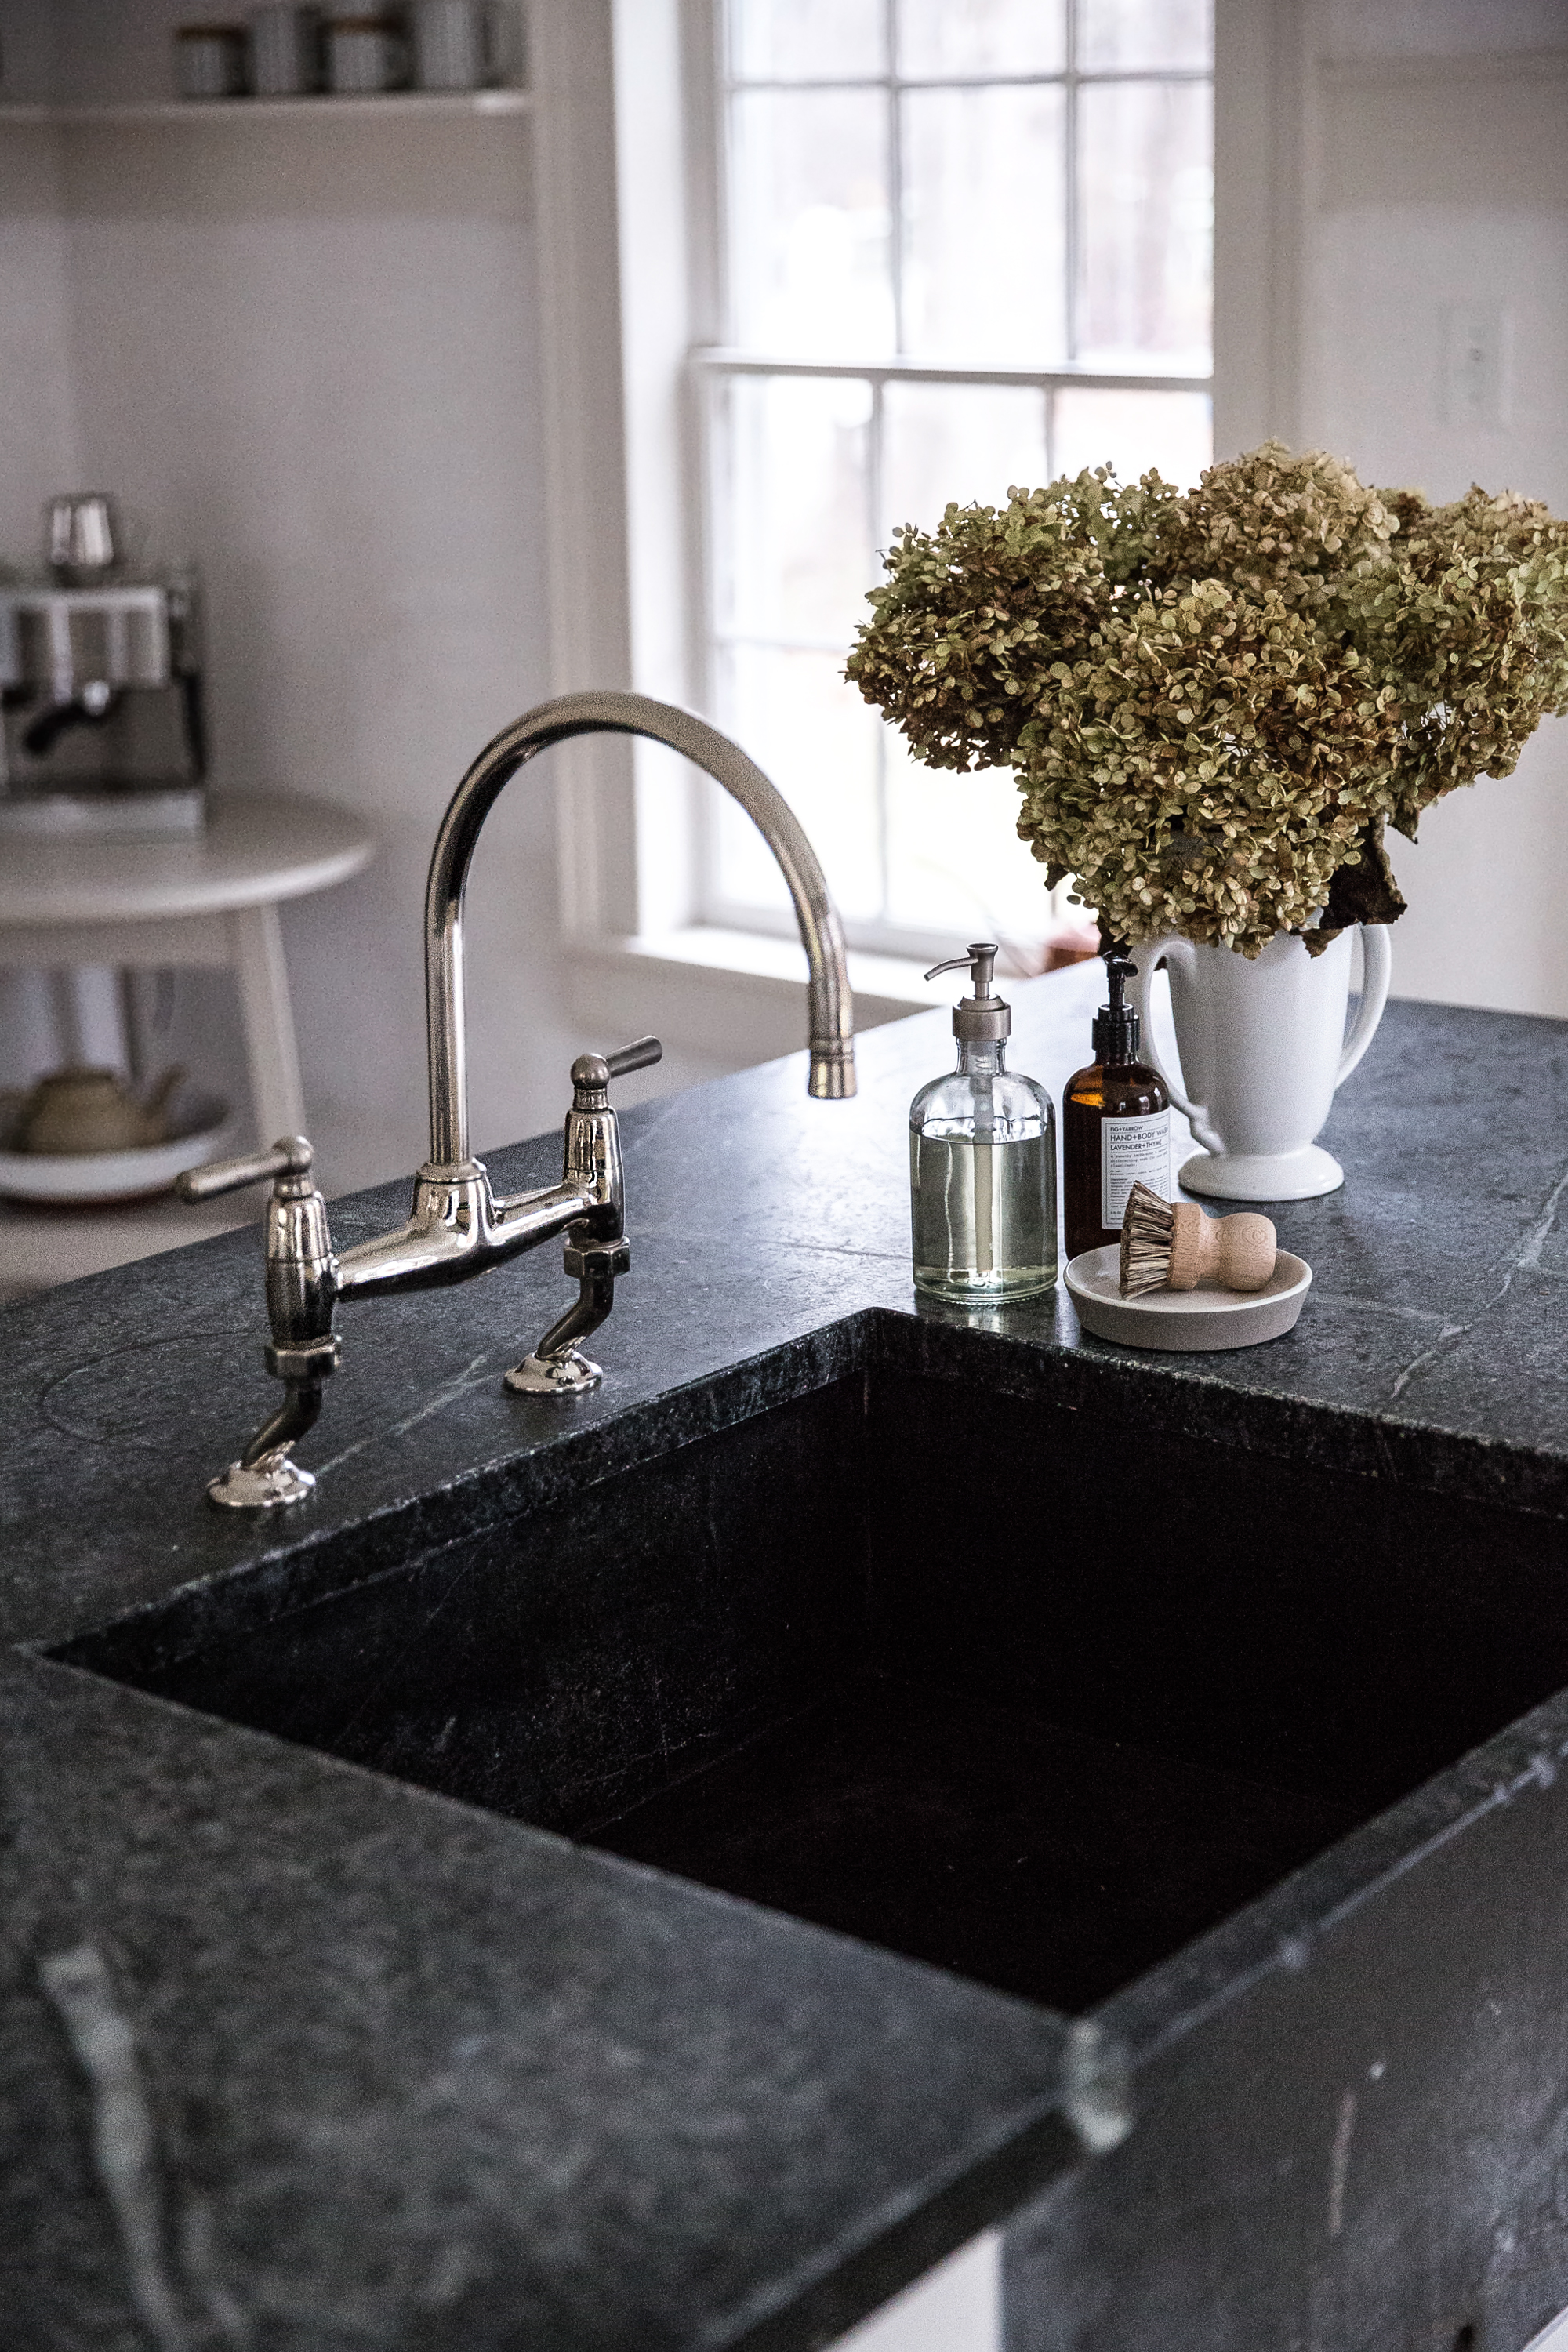 Jersey-Ice-Cream-Co.-Old-Chatham-House-Remodelista-faucet